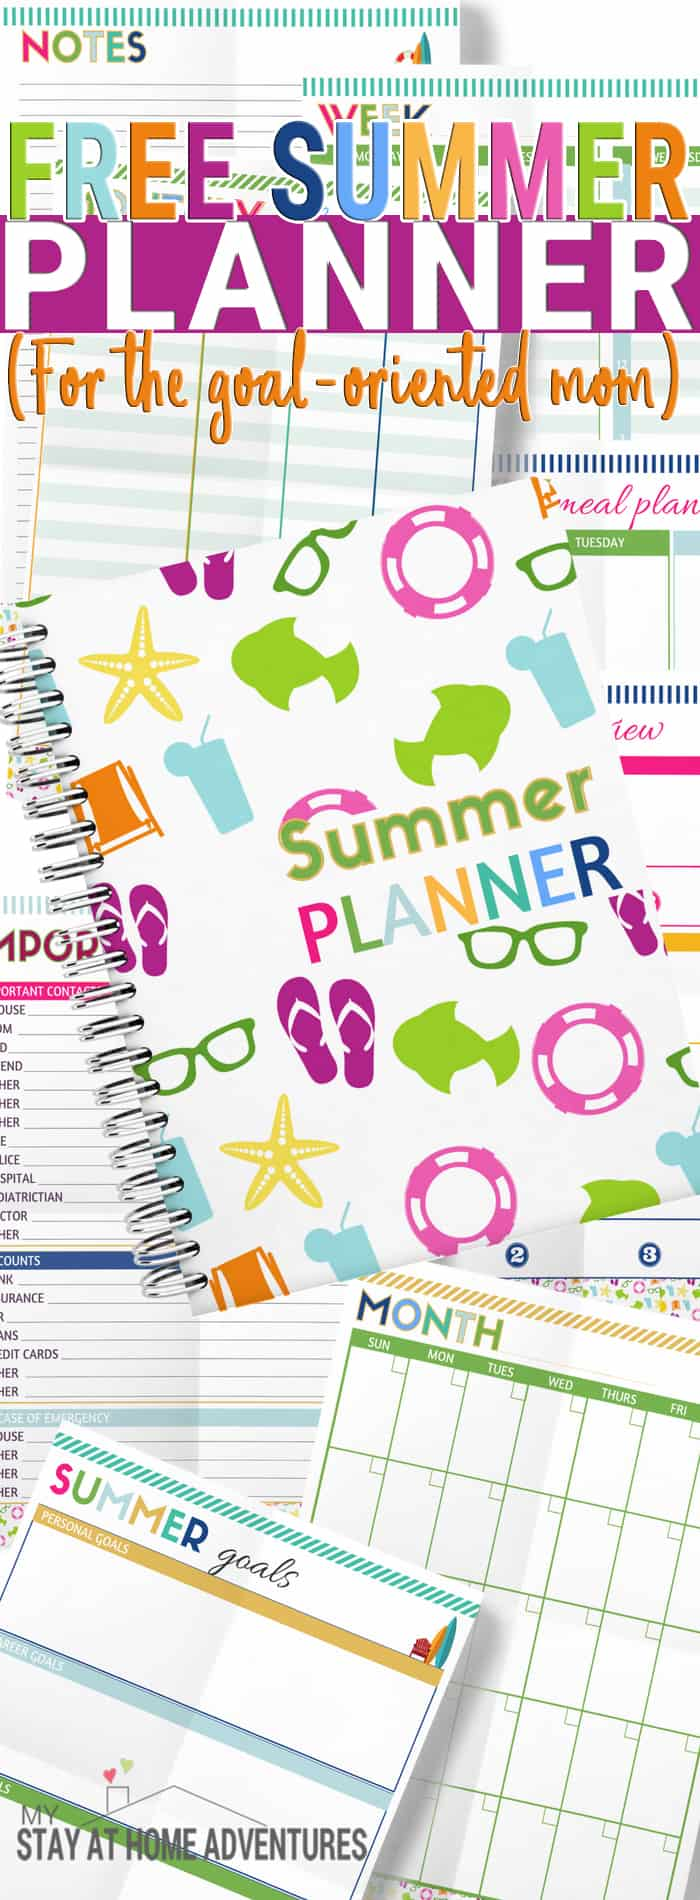 Hurry and download this free summer planner to help your summer run smoothly. From meal planning to weekly goals run your summer days without any stress.